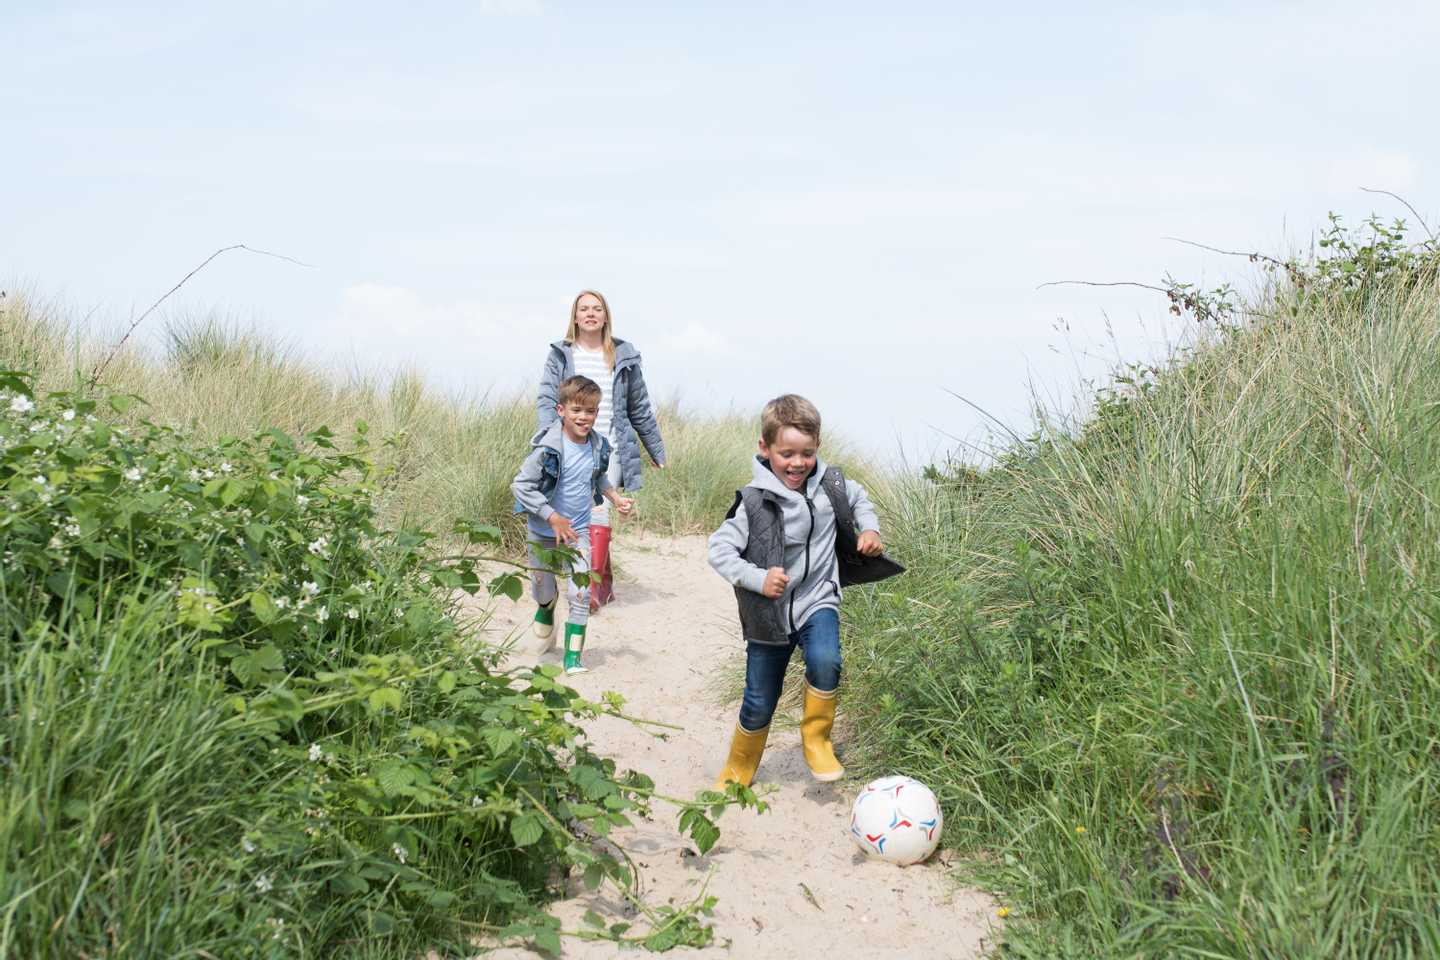 Guests walking through the entrance to the beach at Caister-on-Sea